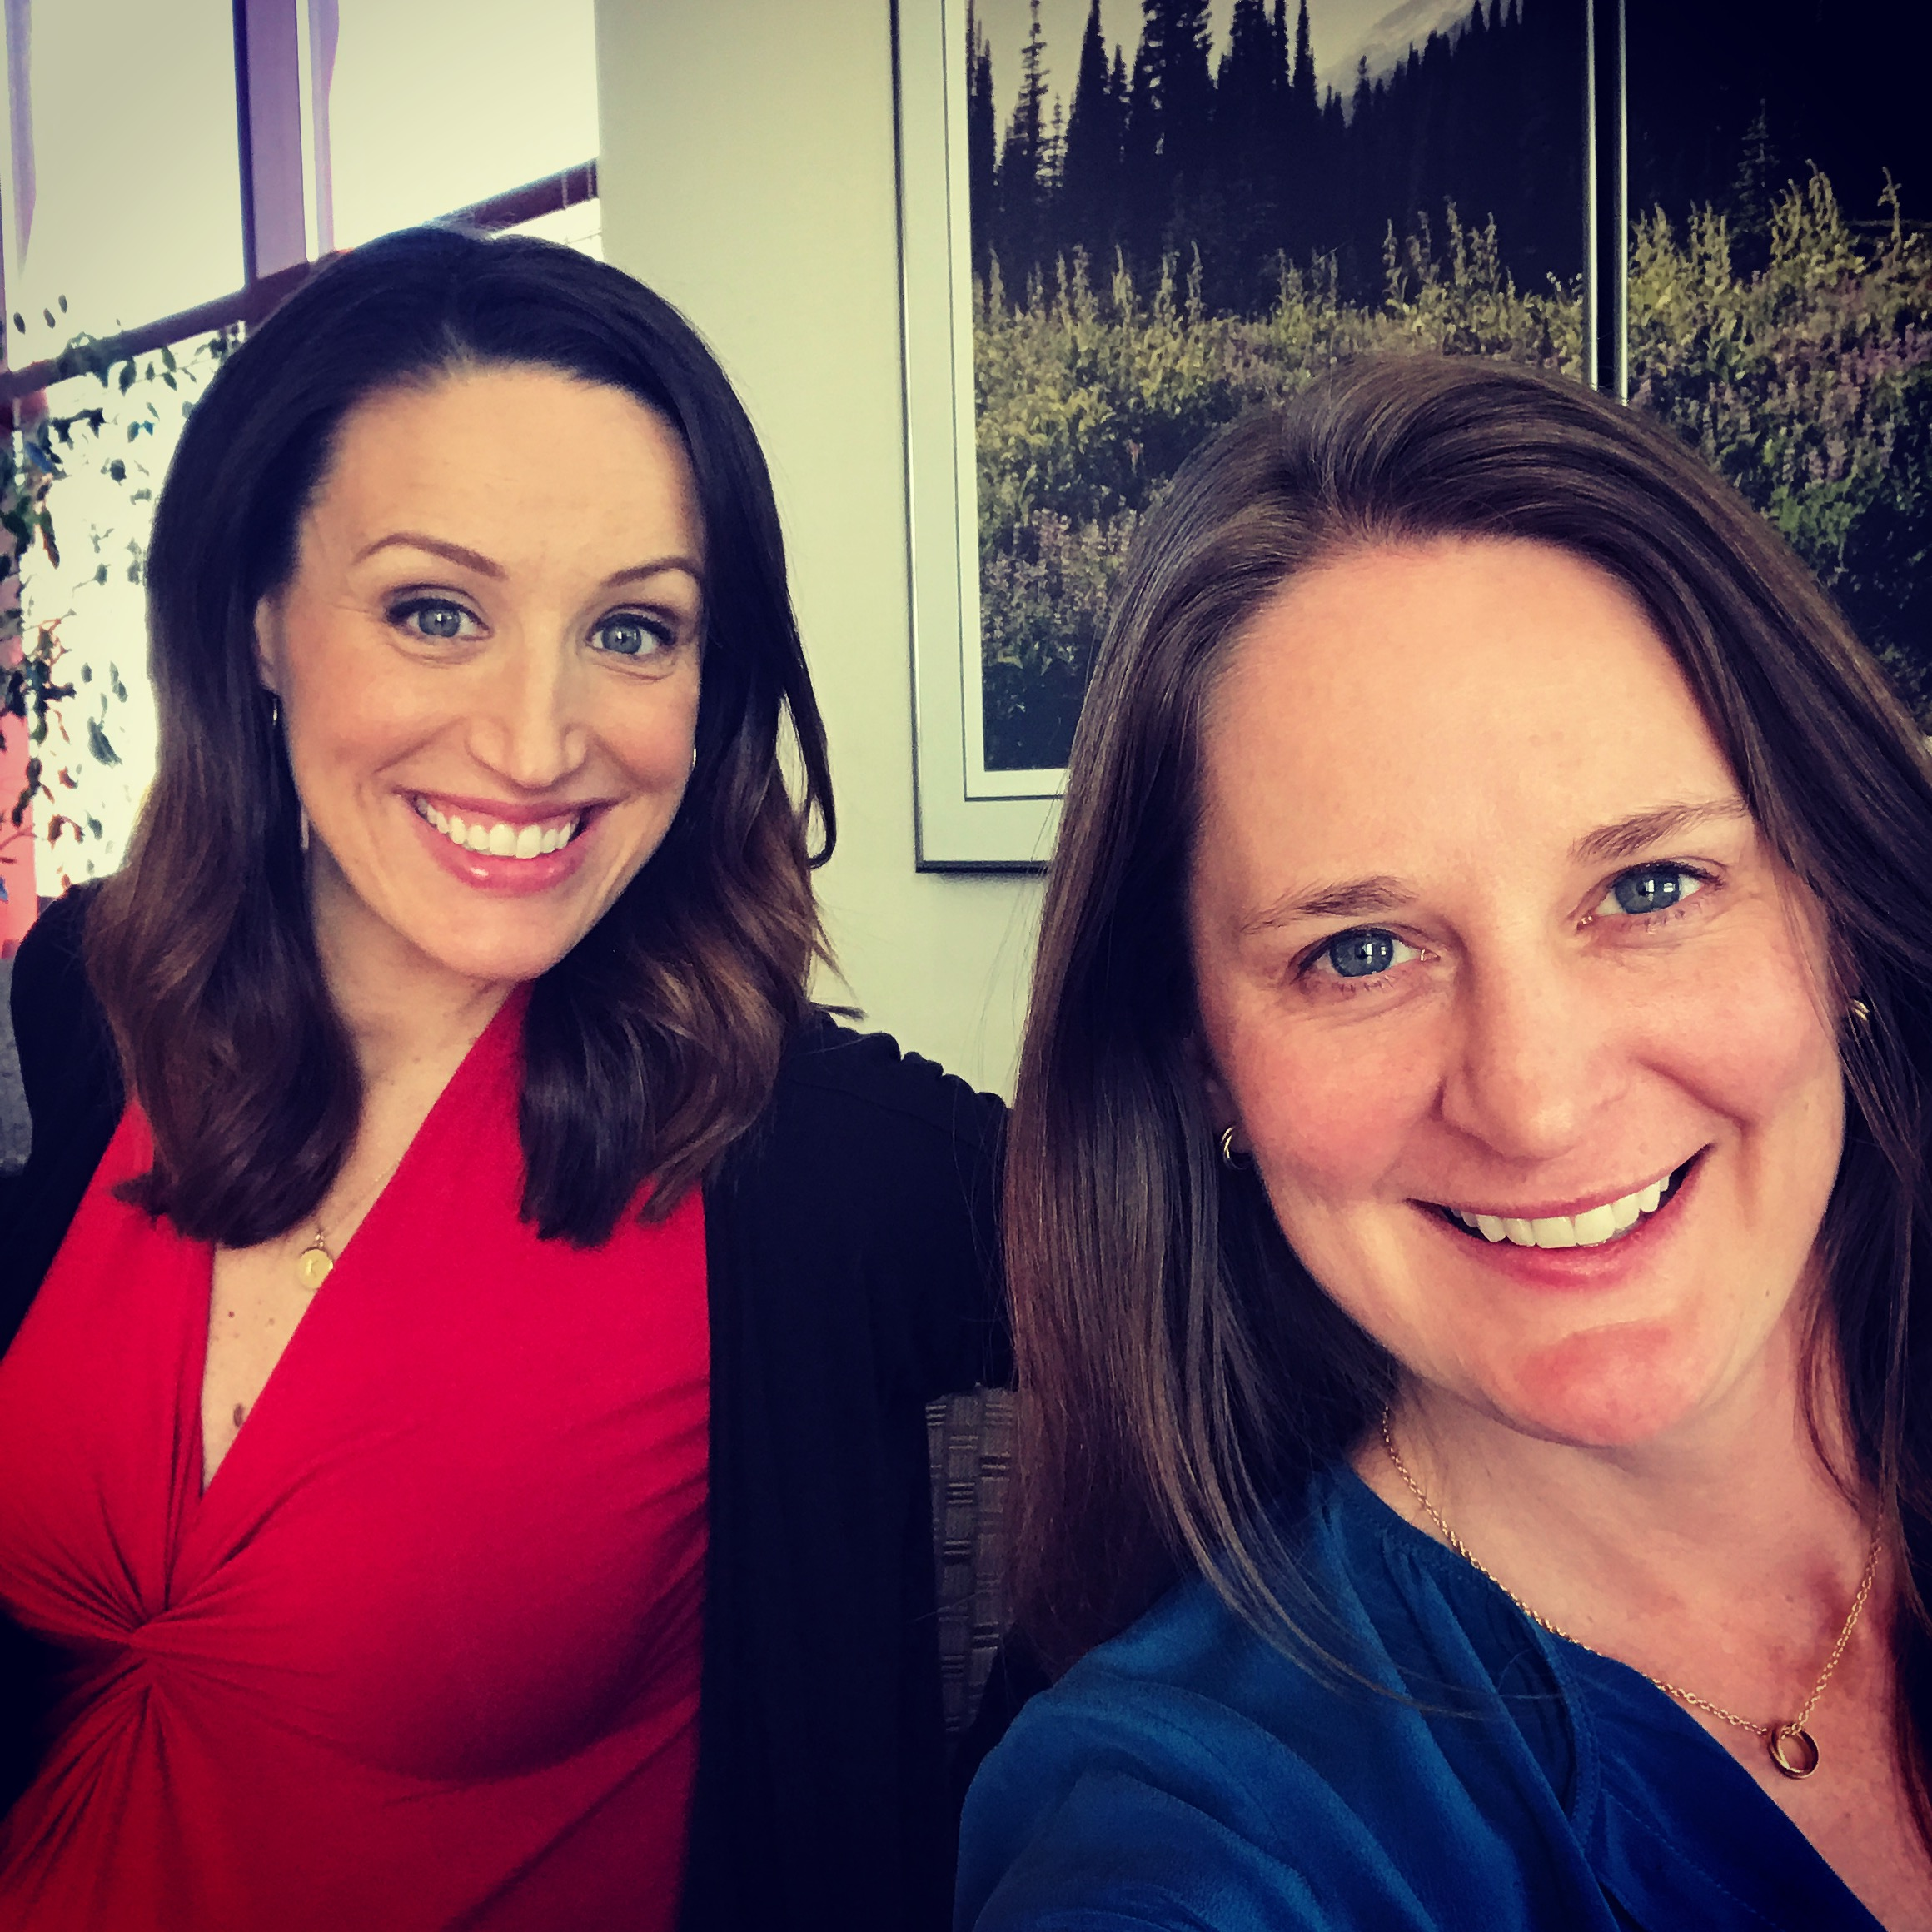 Q13Fox News Kaci Aitchison and I getting ready for the Facebook Live Q&A event